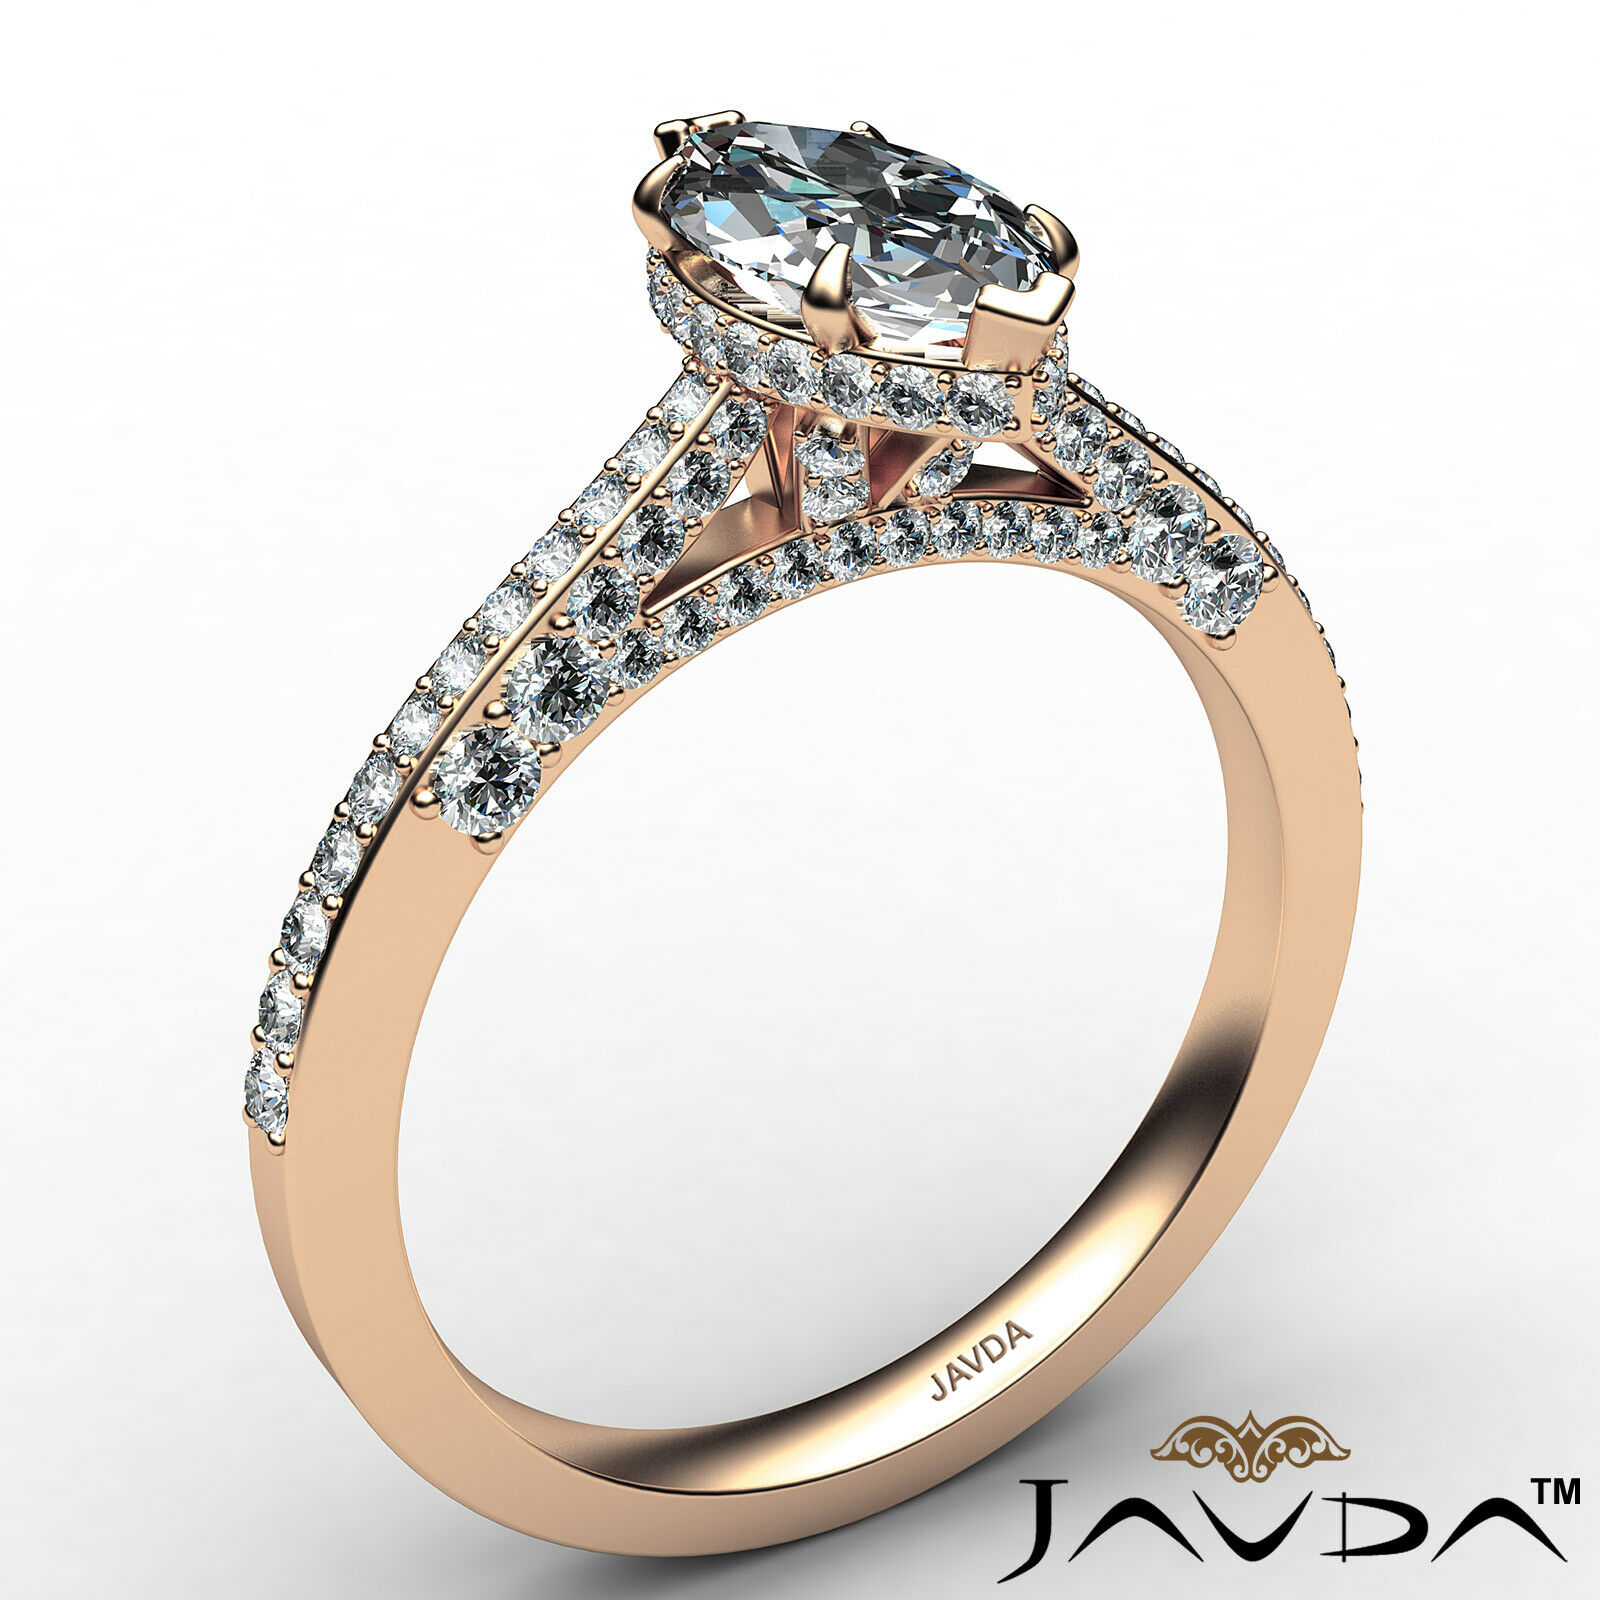 Circa Halo Marquise Diamond Engagement Ring GIA G Color & VVS2 clarity 1.1 ctw 5